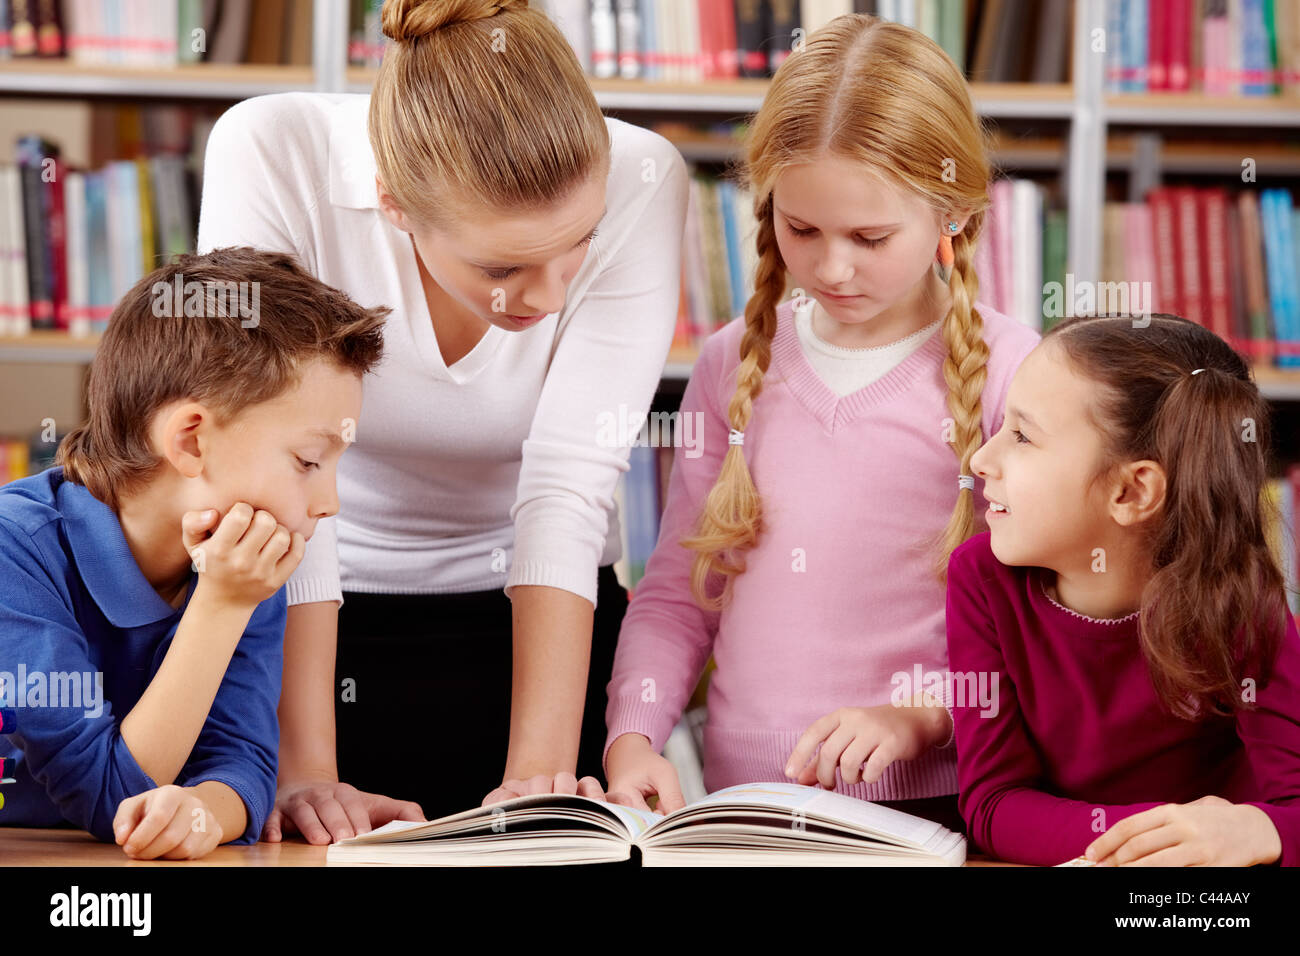 Portrait of pupils and teacher reading and discussing interesting book in library - Stock Image